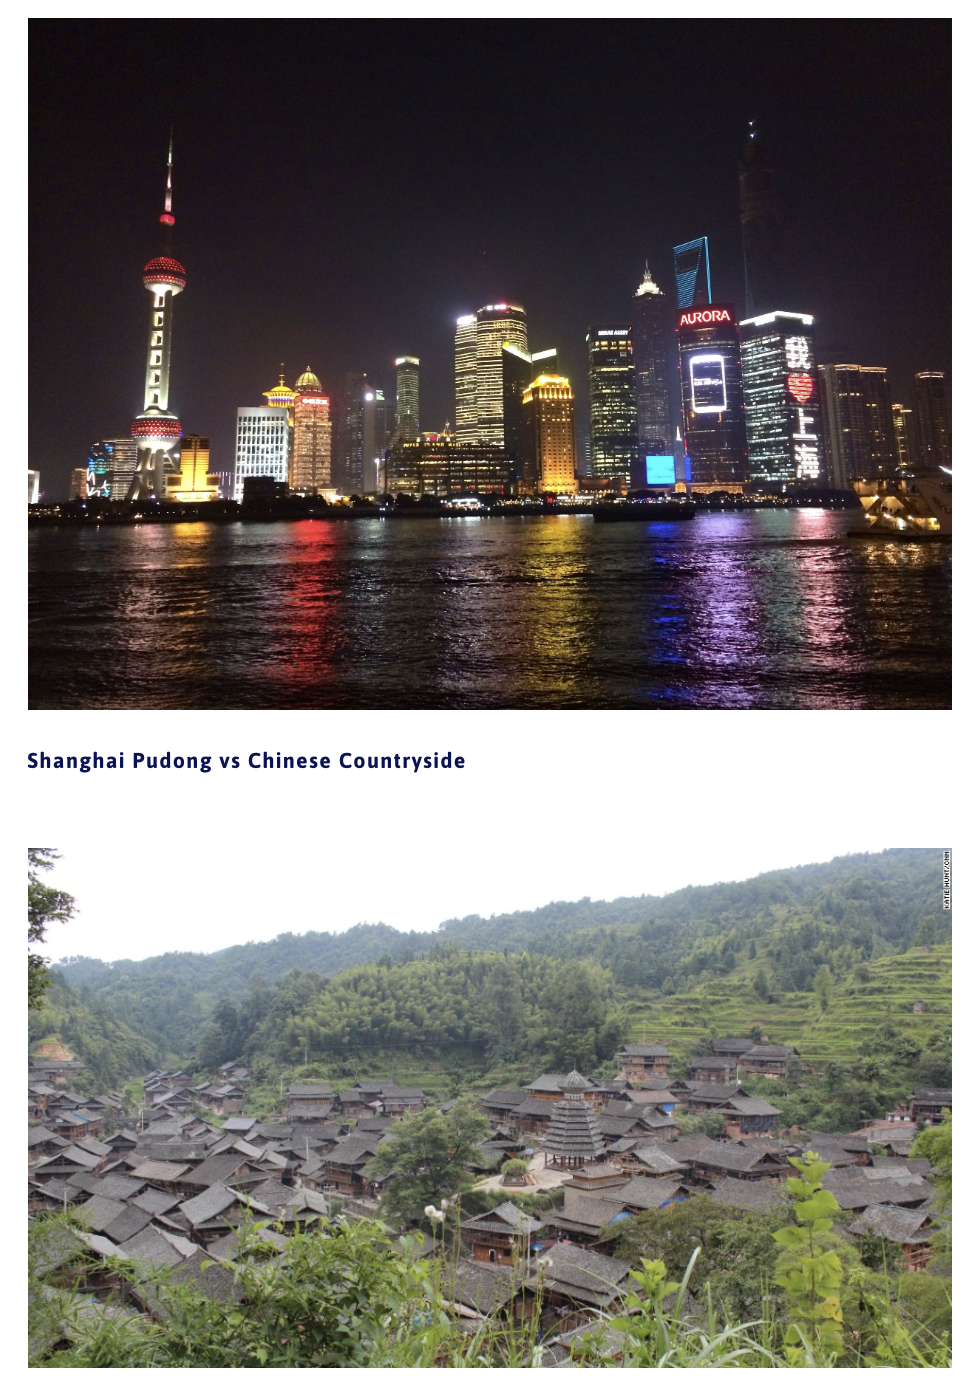 Shanghai Pudong vs Chinese Countryside